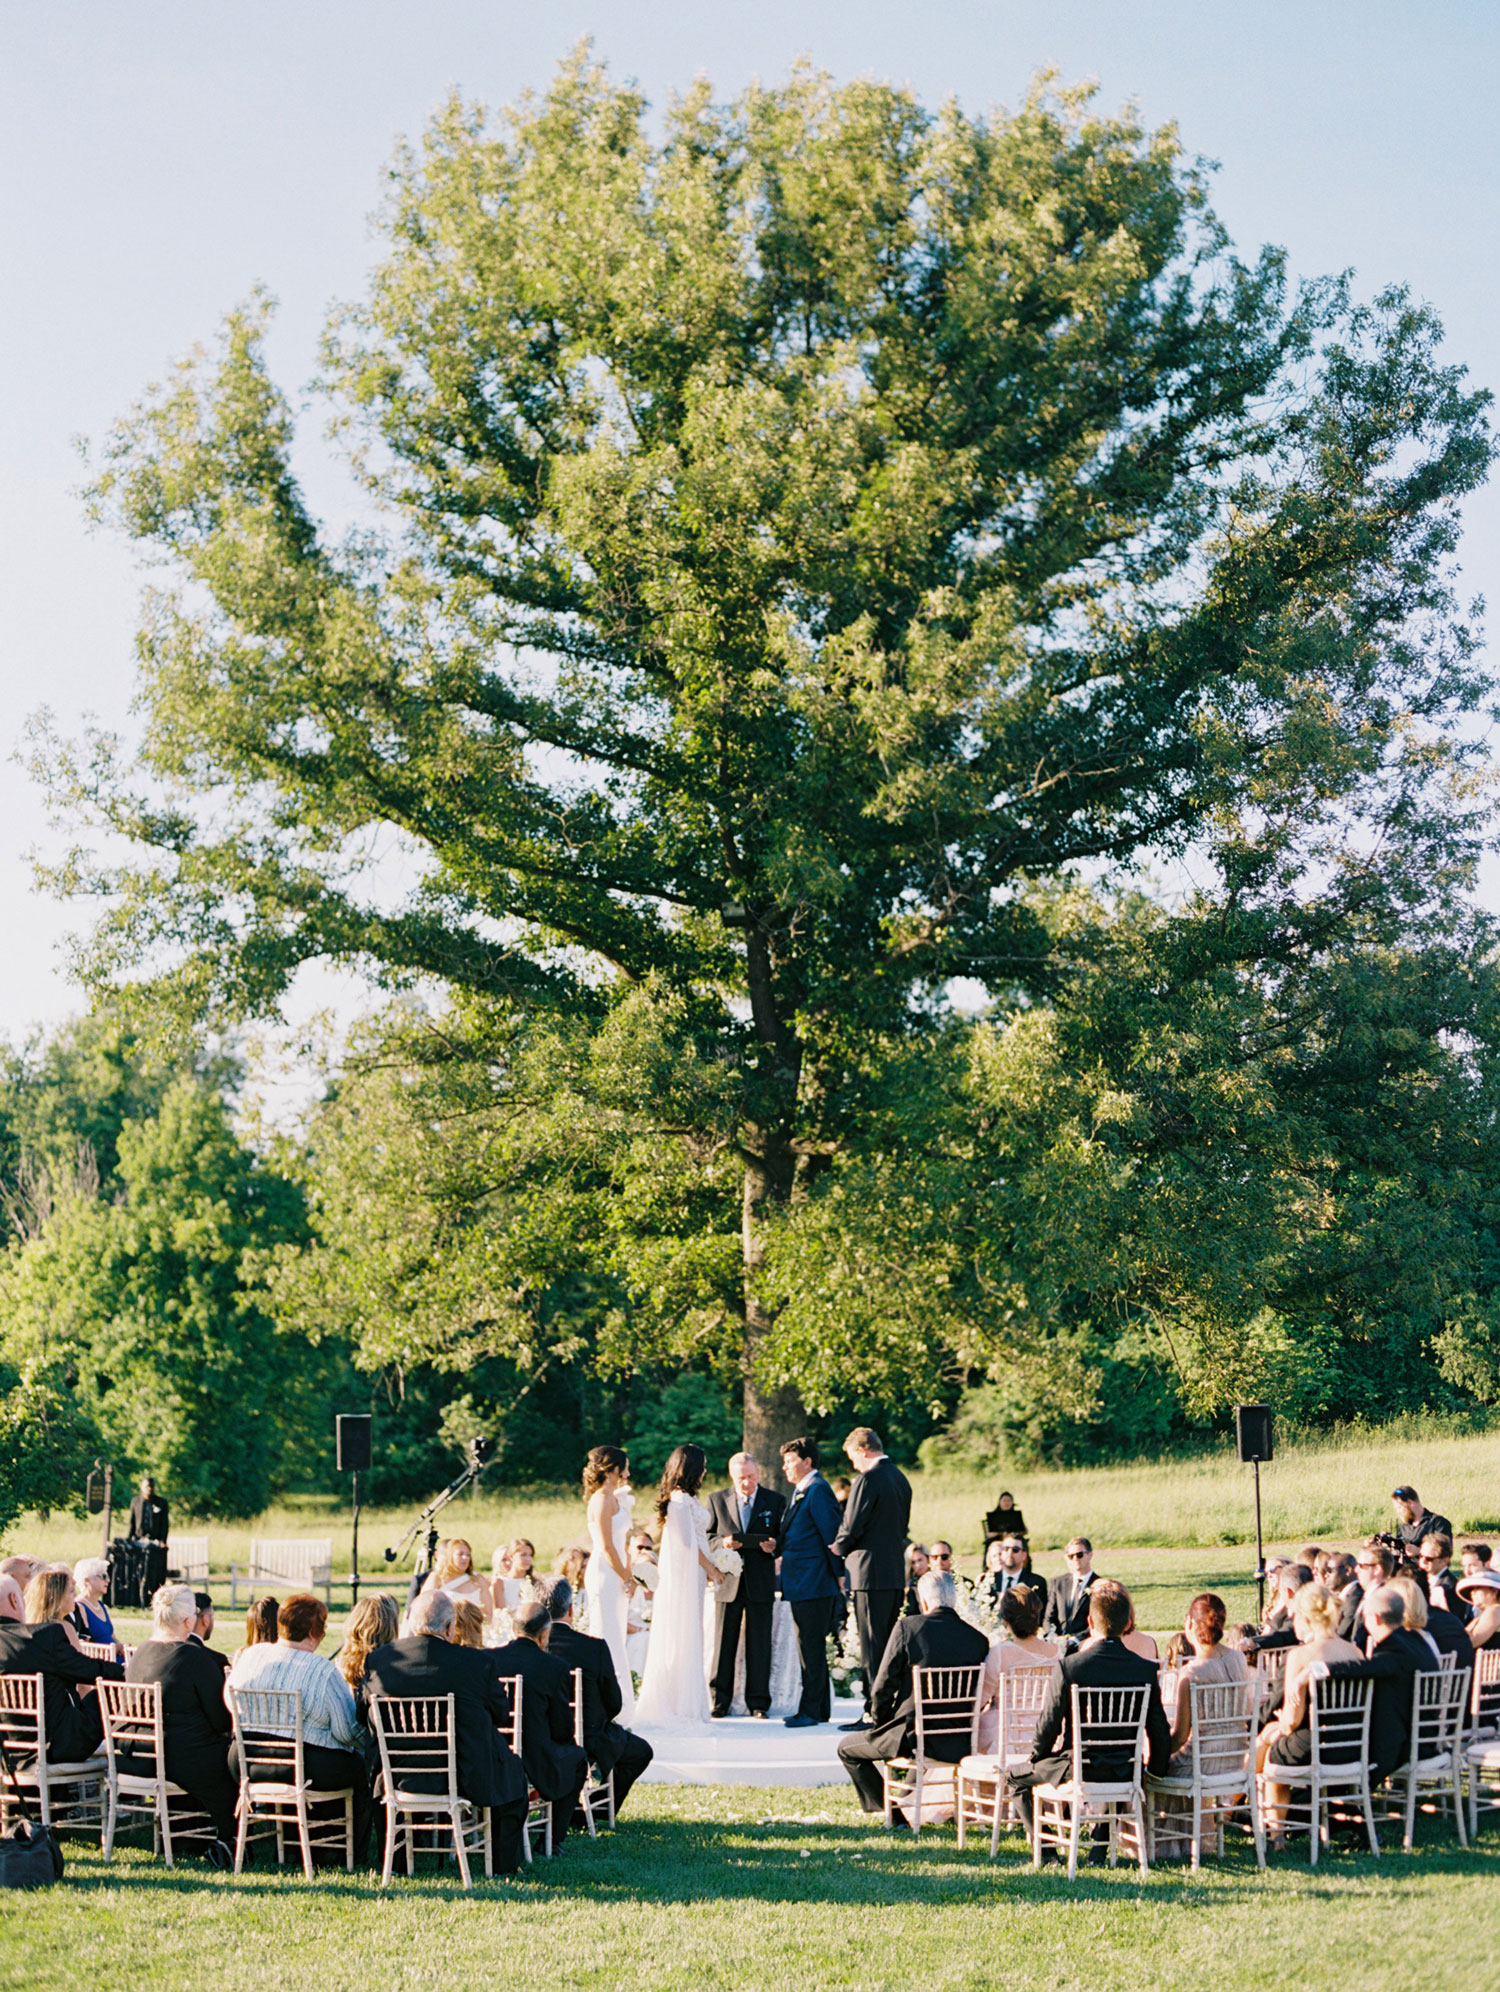 Outdoor wedding ceremony with tall trees countryside